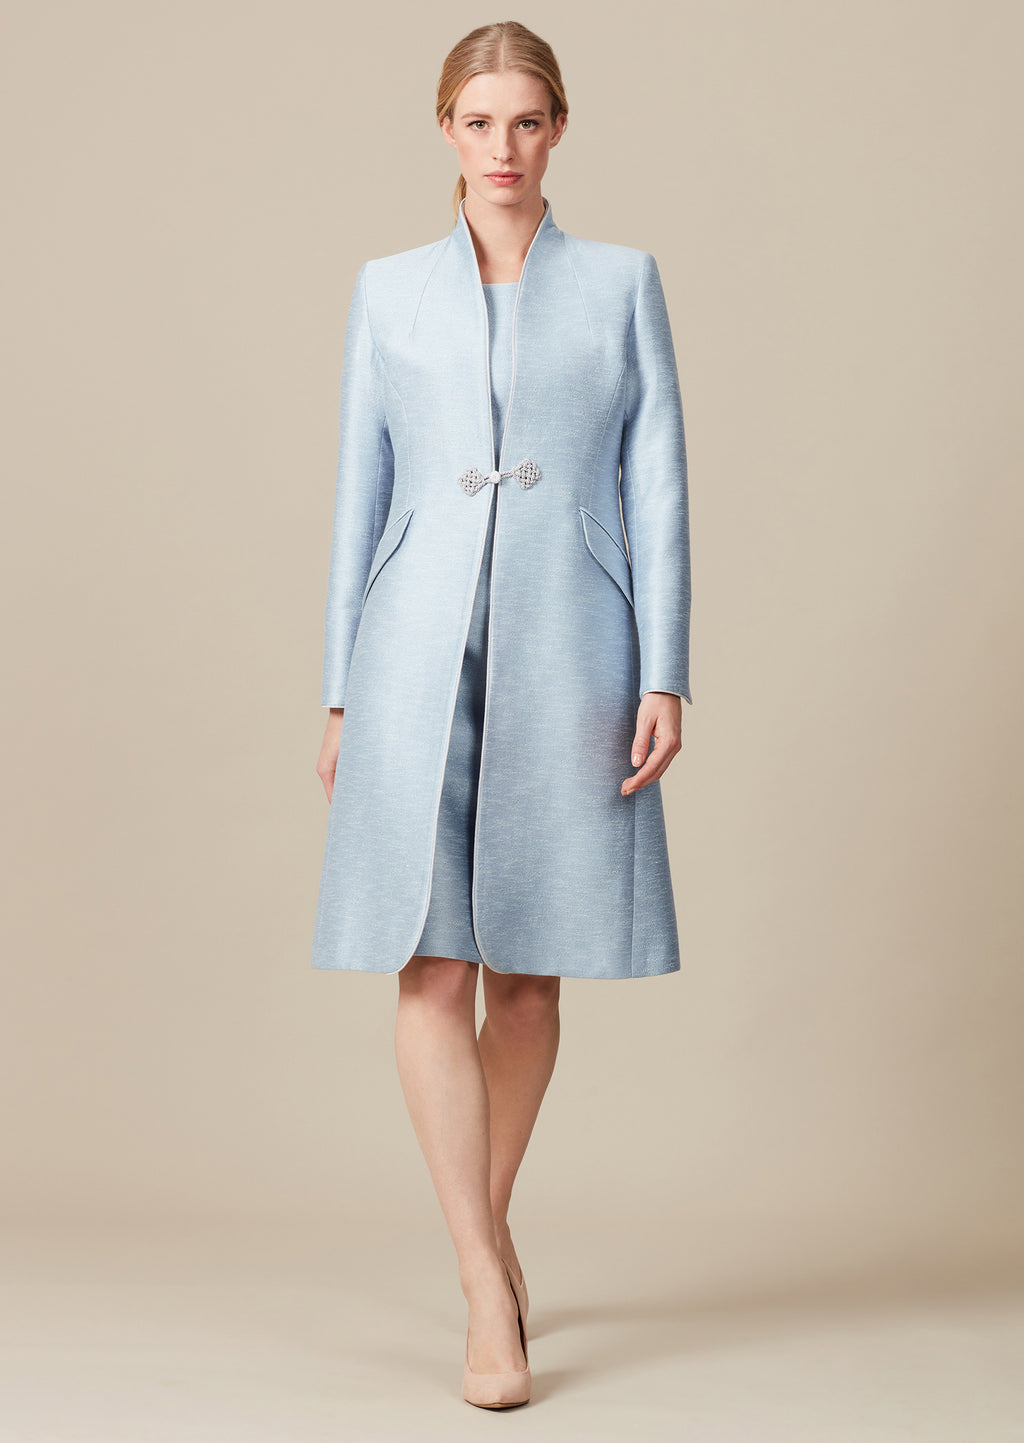 Elegant sky blue dress-coat in silk/cotton summer tweed with cord edge detailing and front and cuff frogging detail.